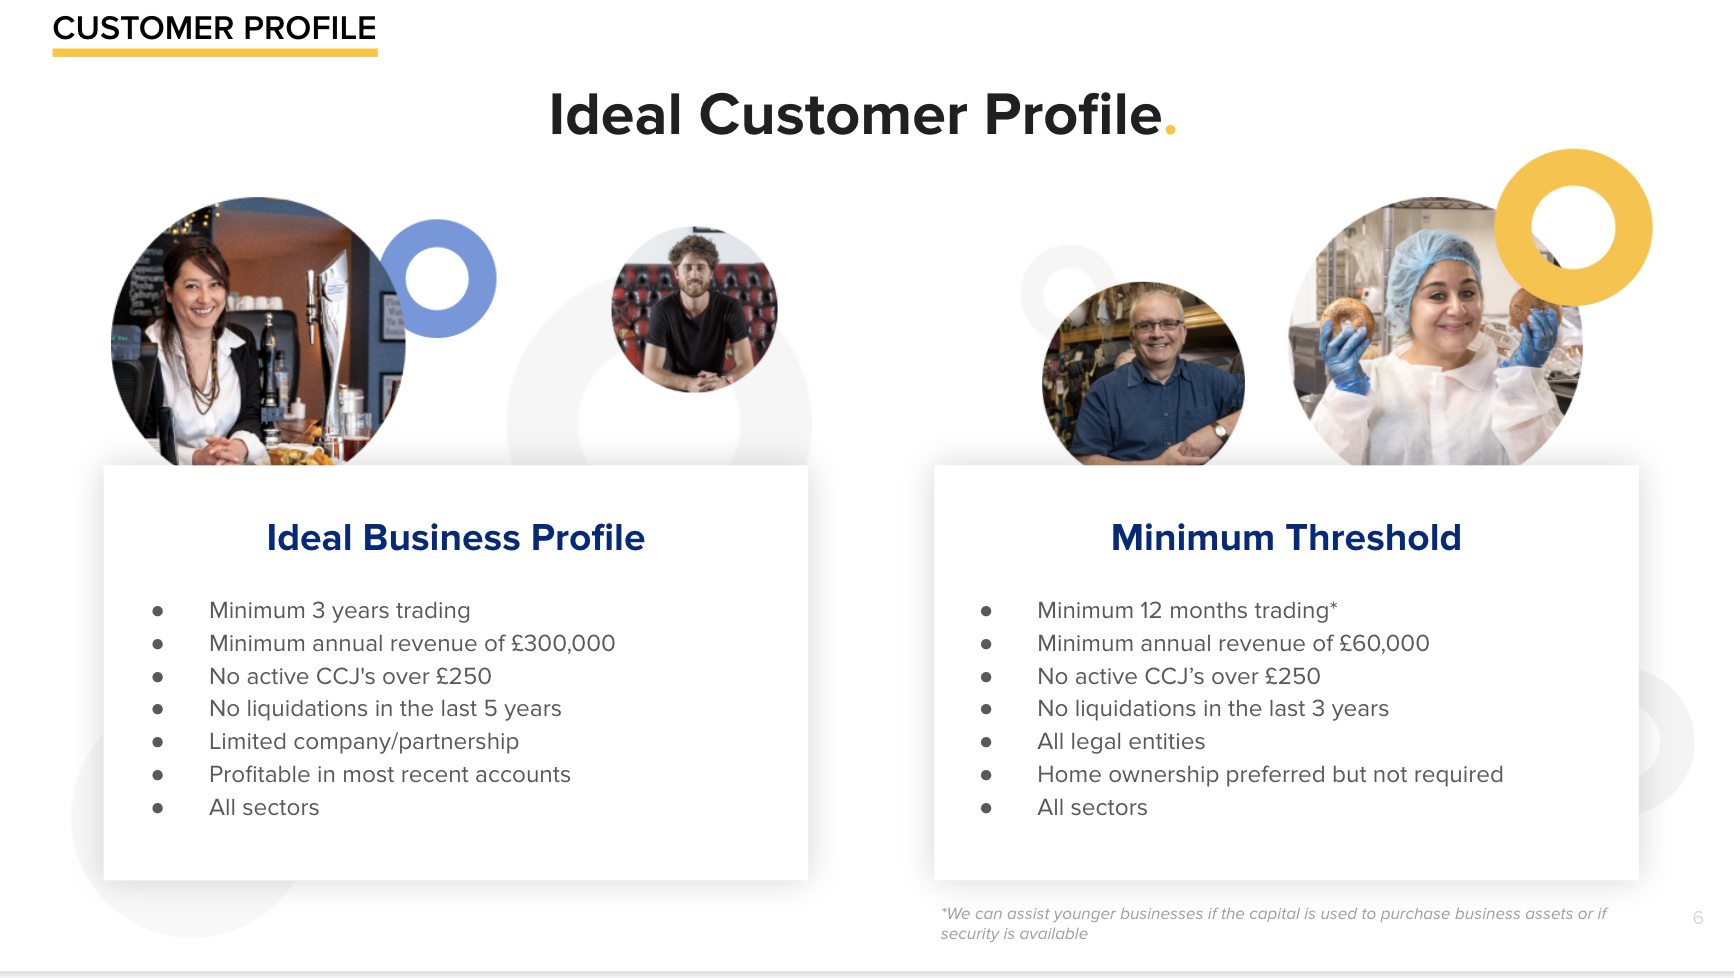 ideal customer profile for lending